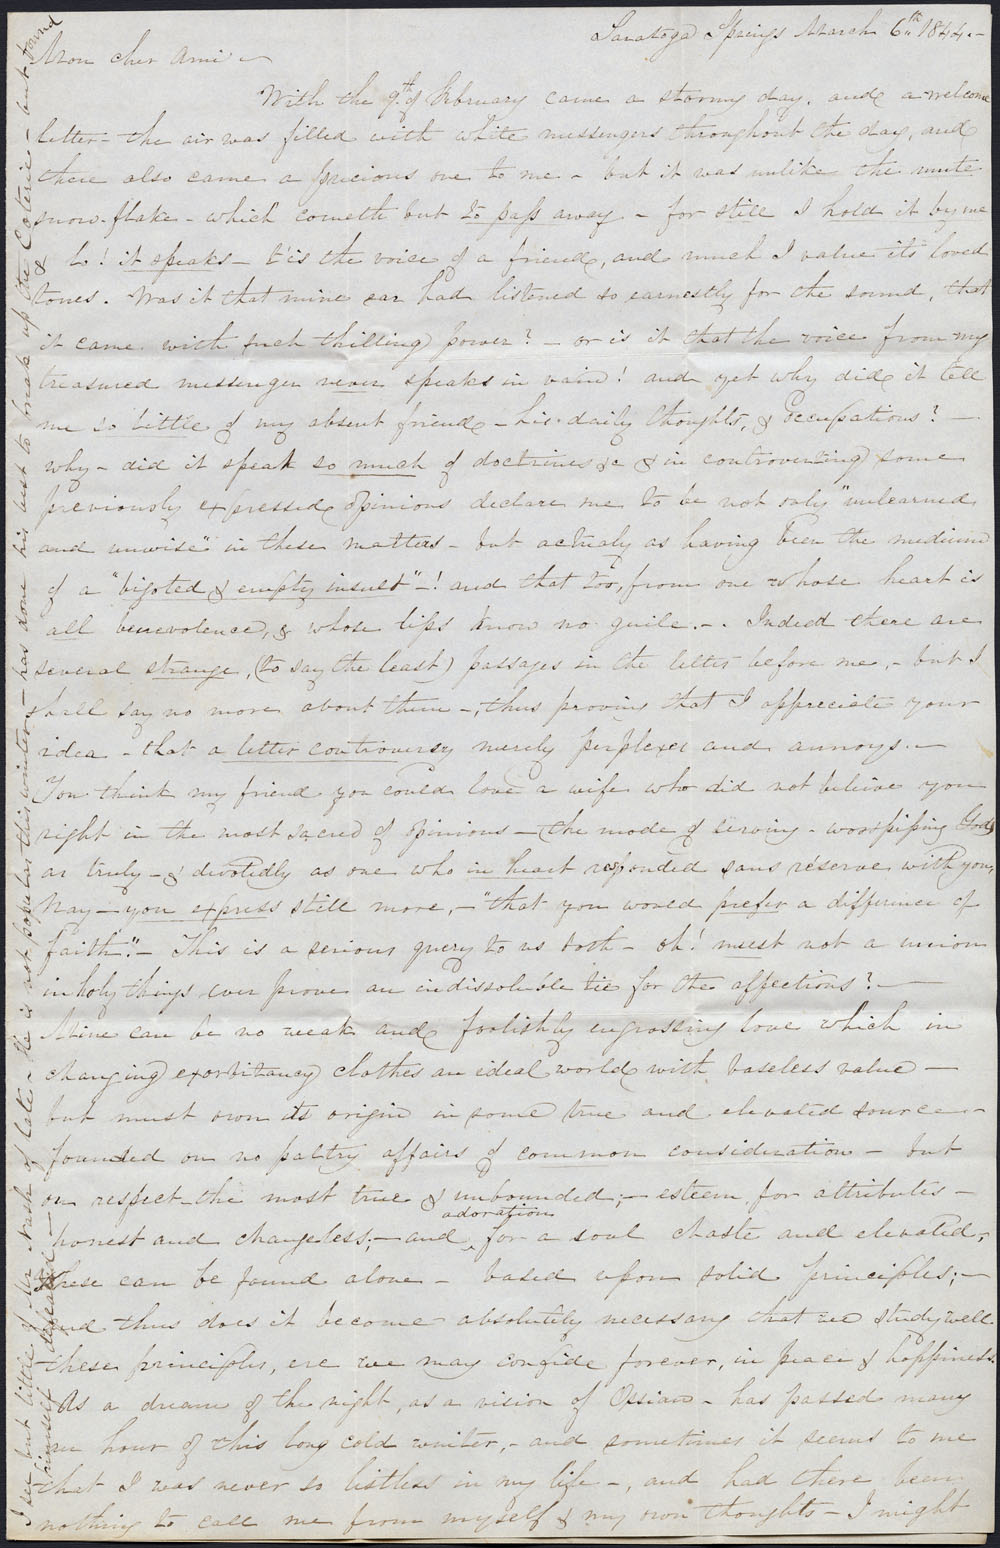 [Correspondence of Mary Westcott] 1844. (item 1)